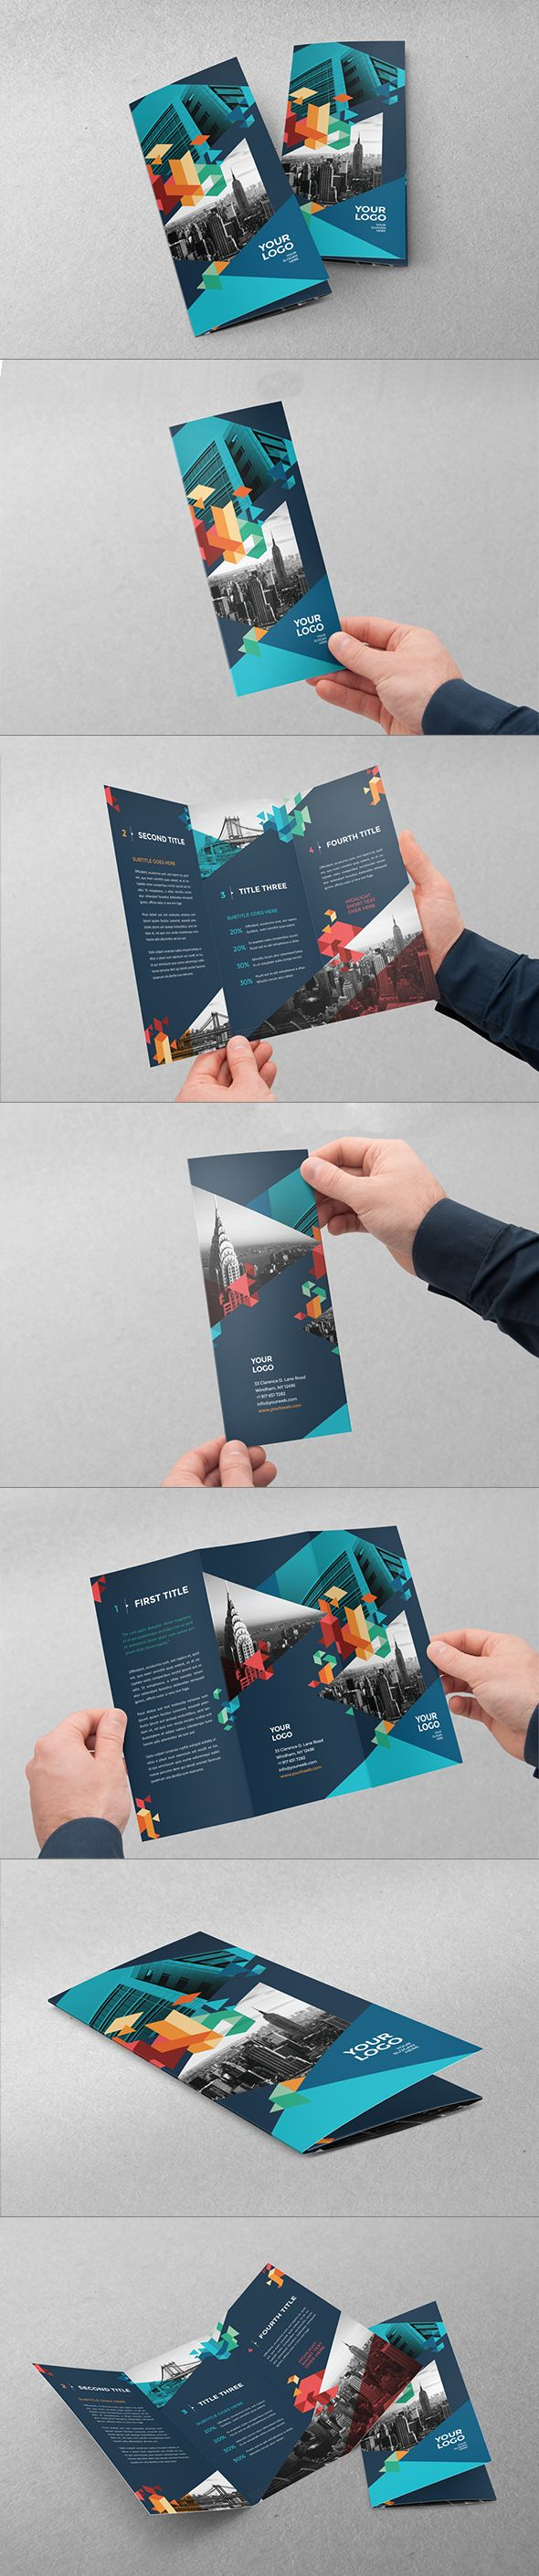 Colorful Blue Trifold. Download here: http://graphicriver.net/item/colorful-blue-trifold/10814349?ref=abradesign #trifod #brochure #design